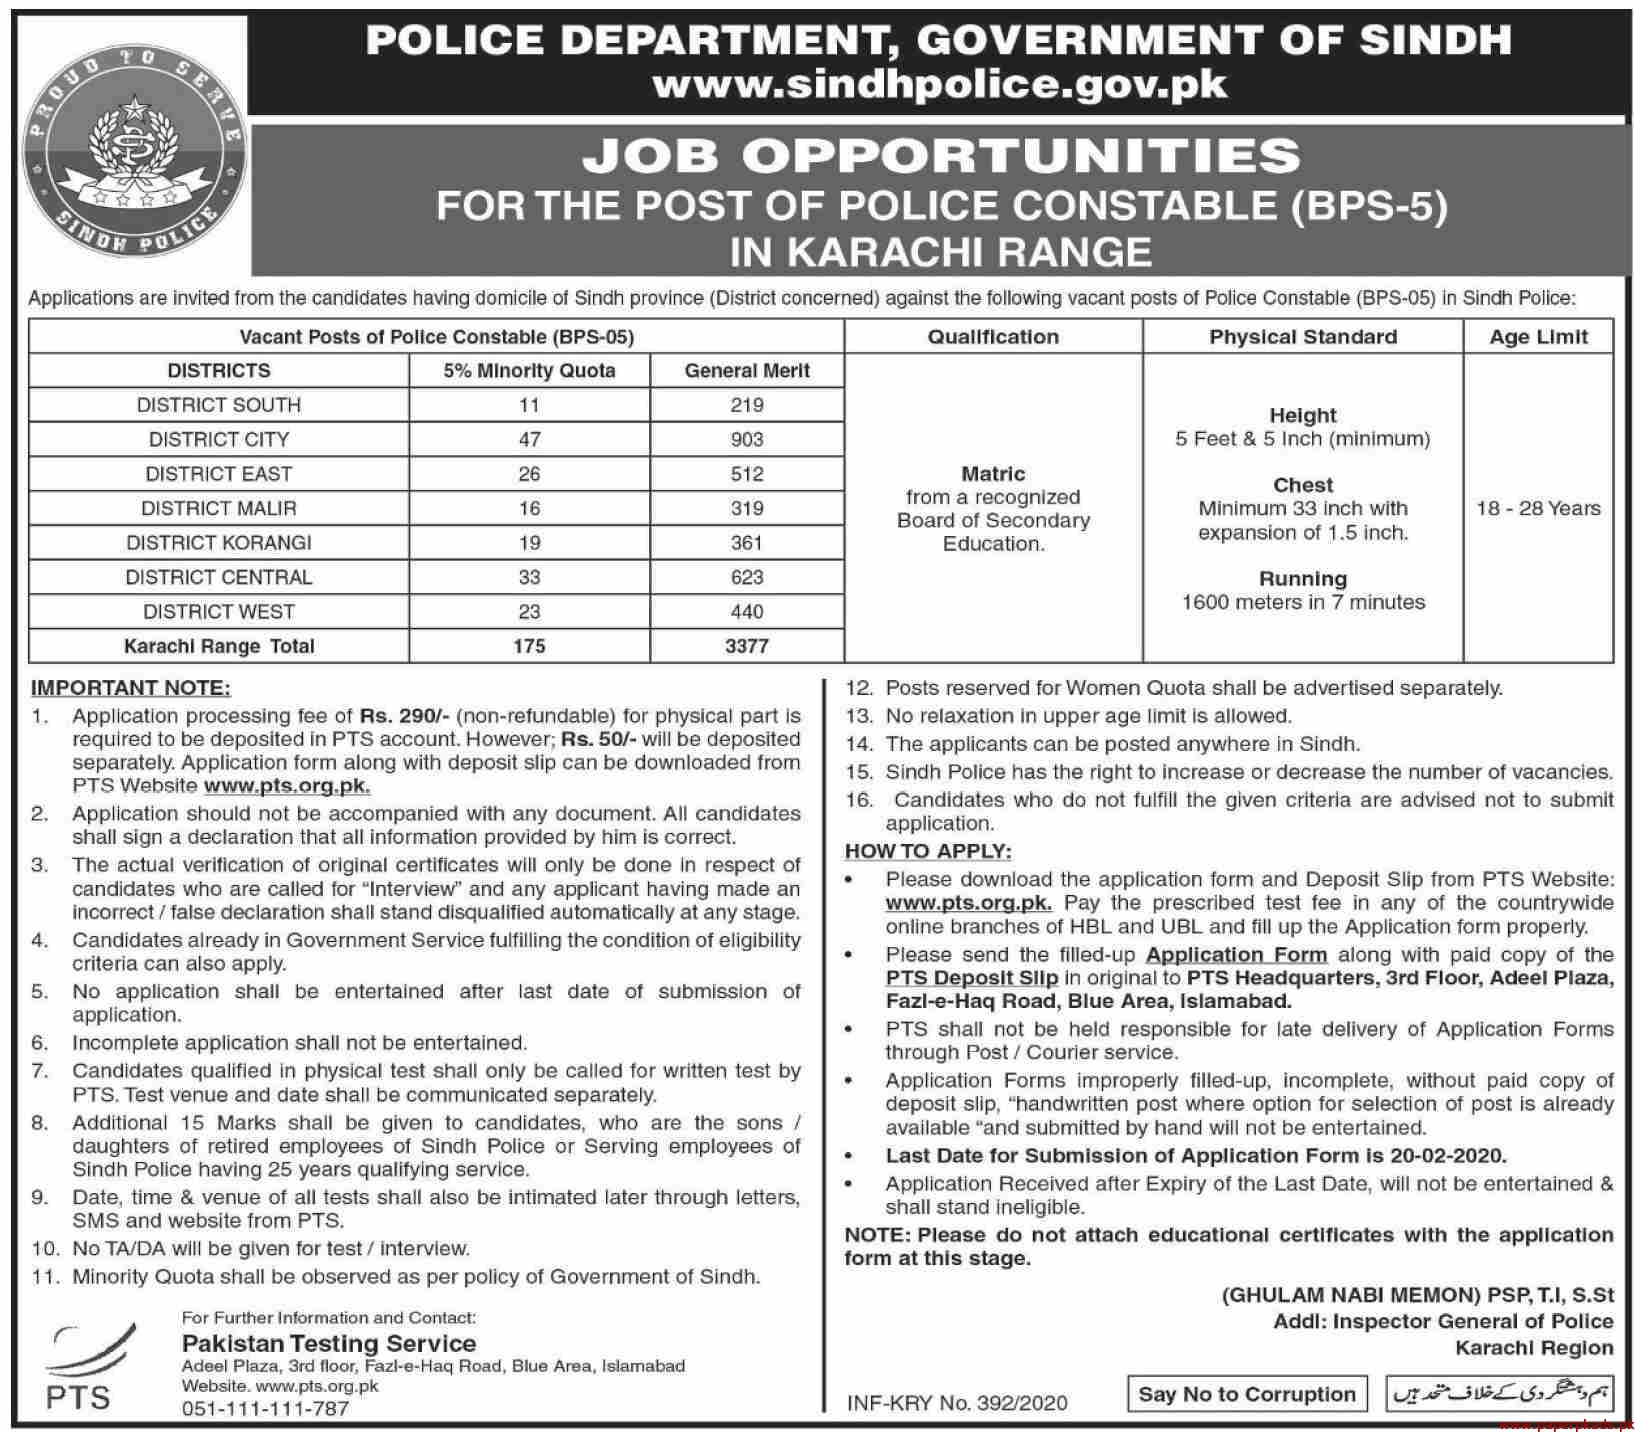 Police Department Government of Sindh Karachi Jobs 2020 Latest